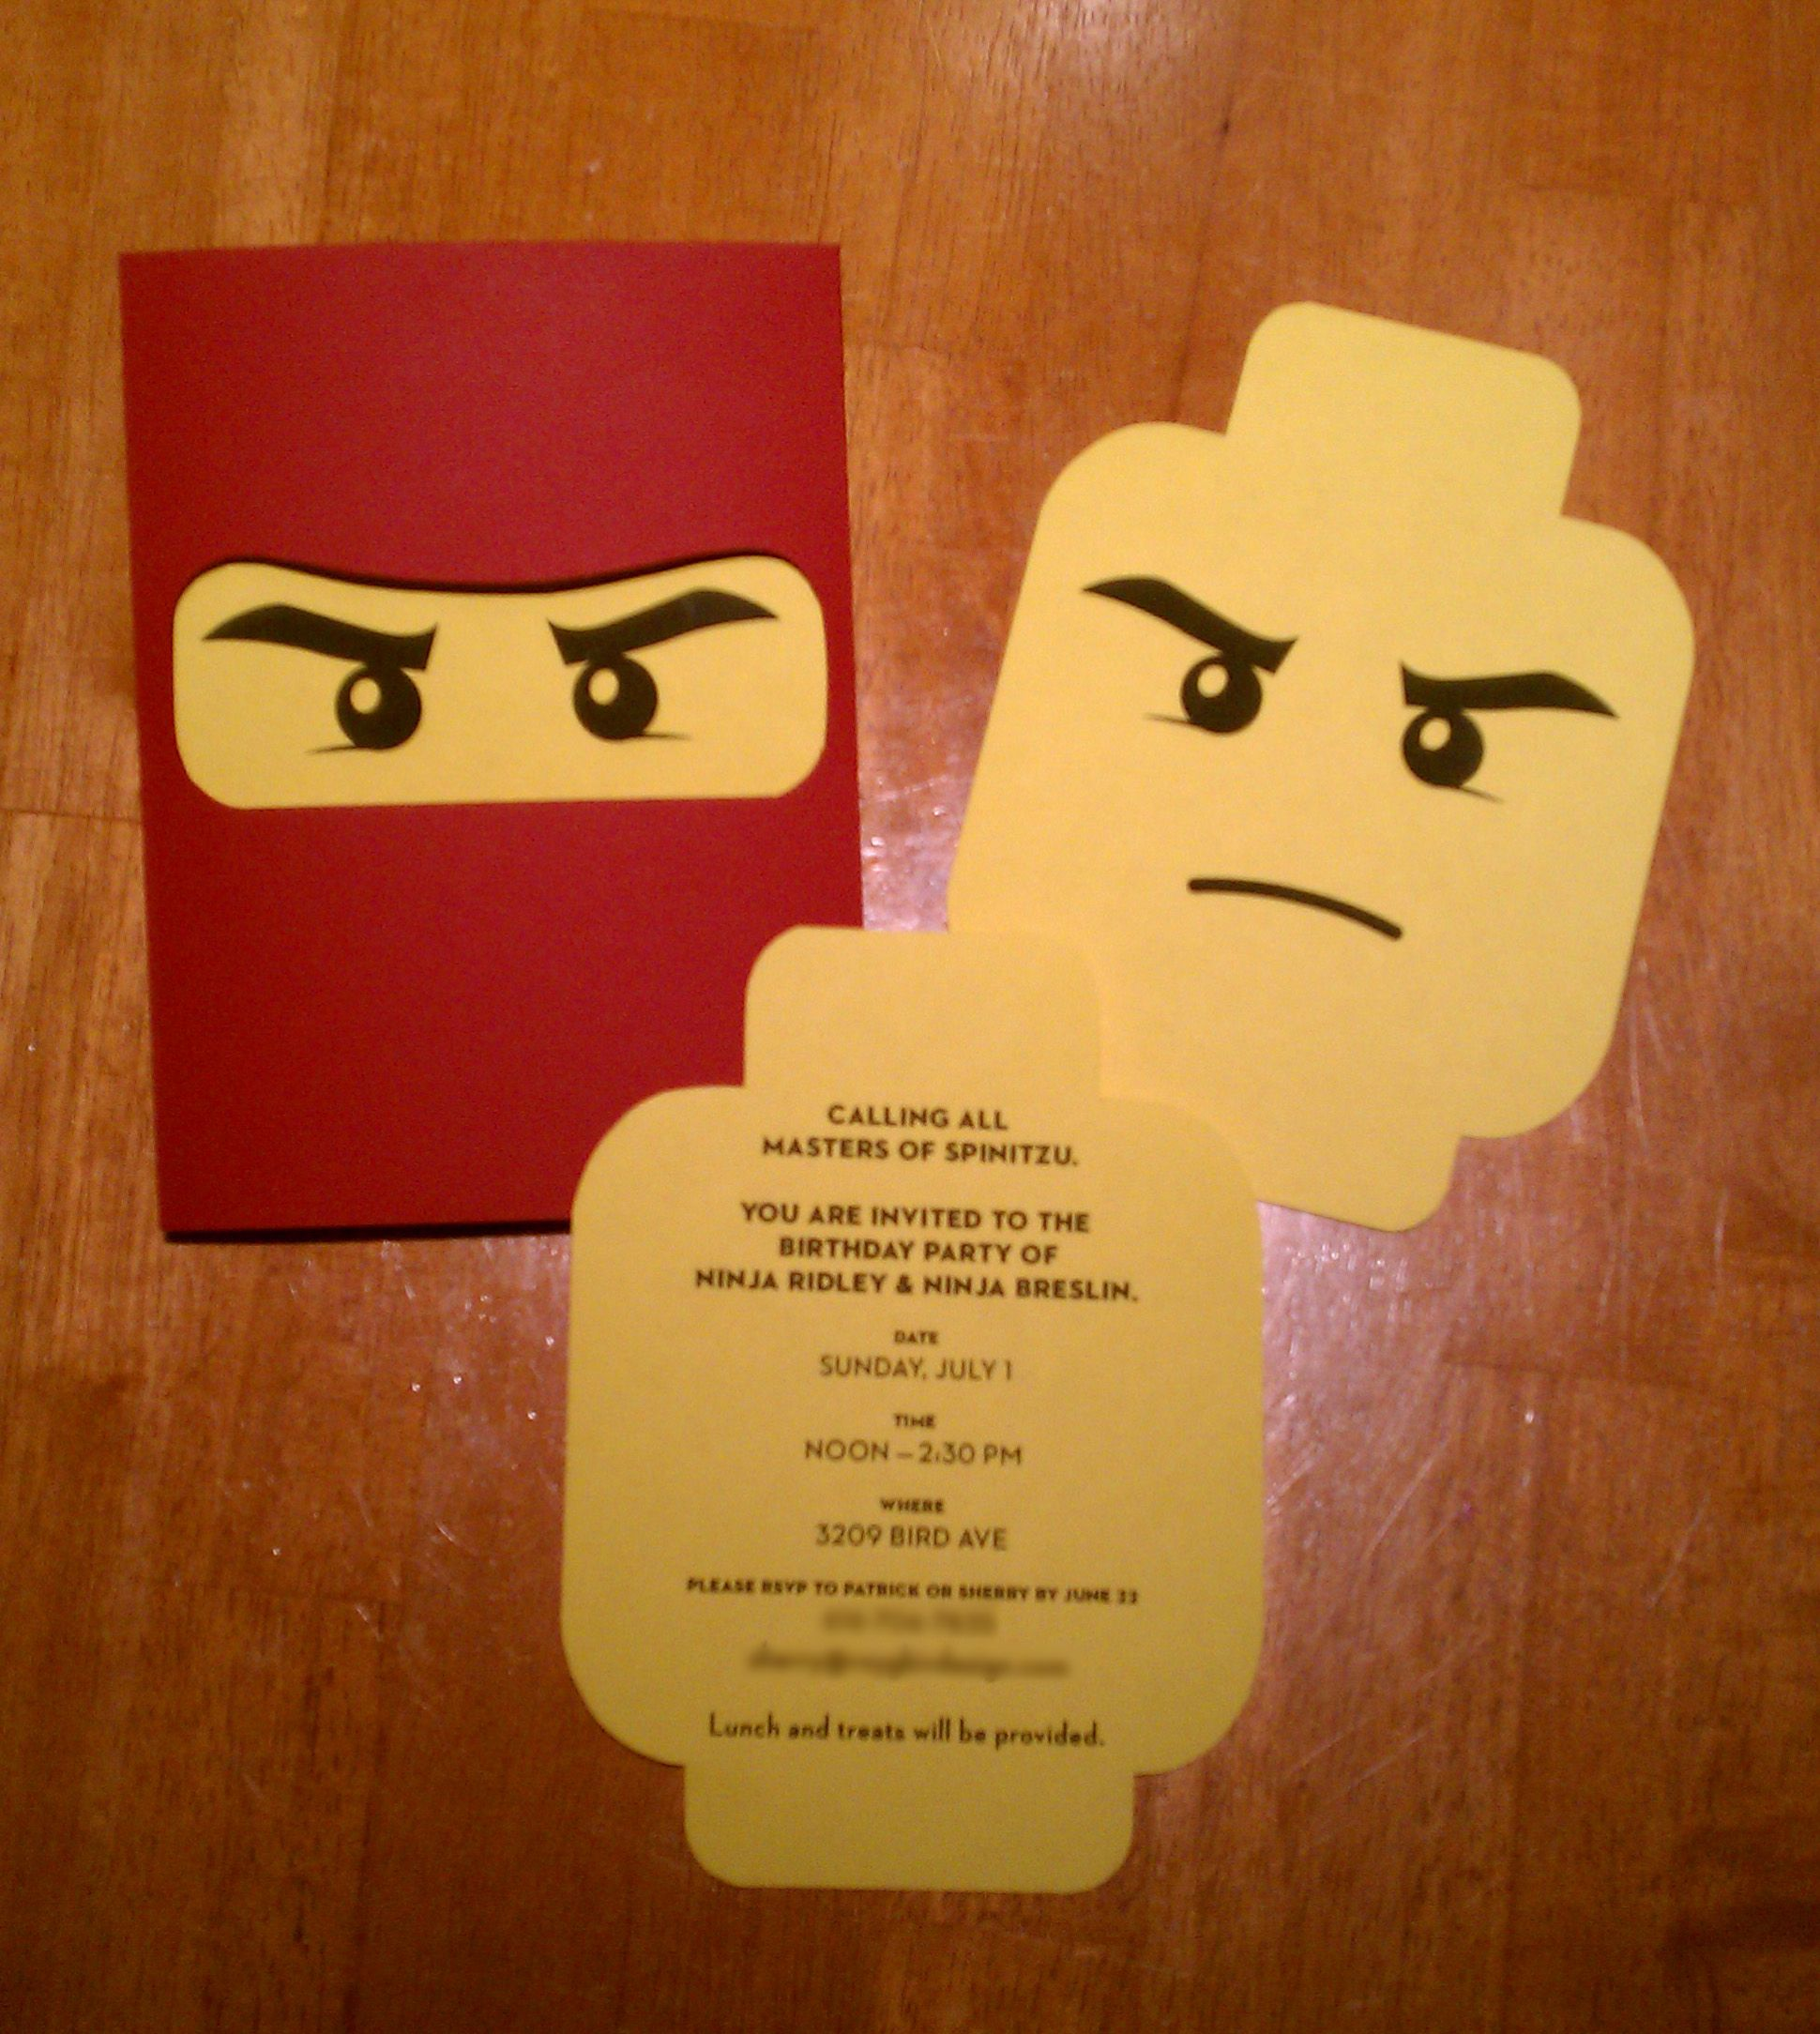 Schön Lego Ninjago Invites For The Boysu0027 Birthday Party. Why Couldnu0027t I Have